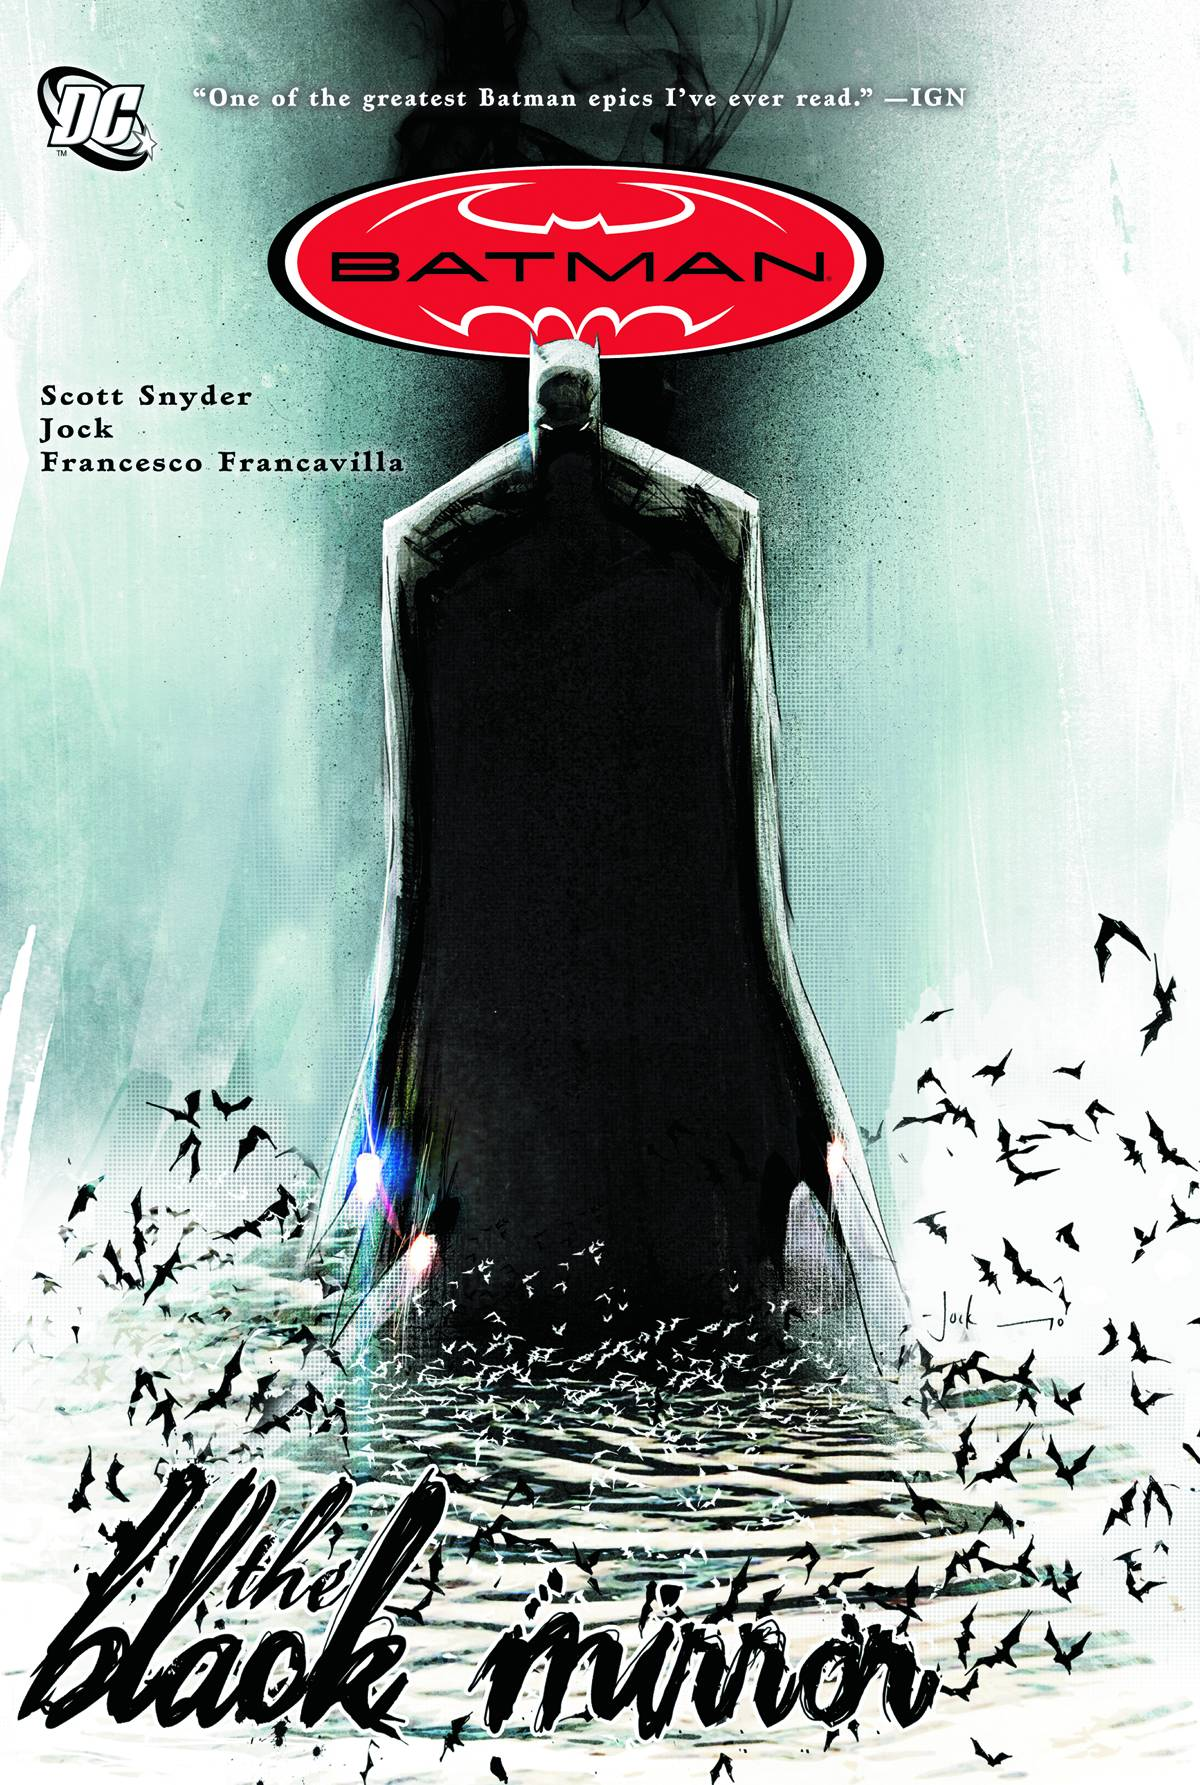 Batman: The Black Mirror TP - Trish's PickIn one of the creepiest and downright darkest Batman tales ever told, writer Scott Snyder tells a tale that is not only Batman's, but Jim Gordon's as well. Dick Grayson, during his brief stint as Batman following the disappearance of Bruce Wayne, struggles to uncover an evil that has emerged from Gotham - an evil more personal to Dick and Commissioner Gordon than any foe they've faced before. With alternating artists delivering the interior art, the cruelty and chaos of Gotham itself is captured by Jock (Wytches) while Francesco Francavilla (Afterlife with Archie) depicts Jim Gordon's story with spectacular colors that change with each scene to dramatically increase creepiness or tension.